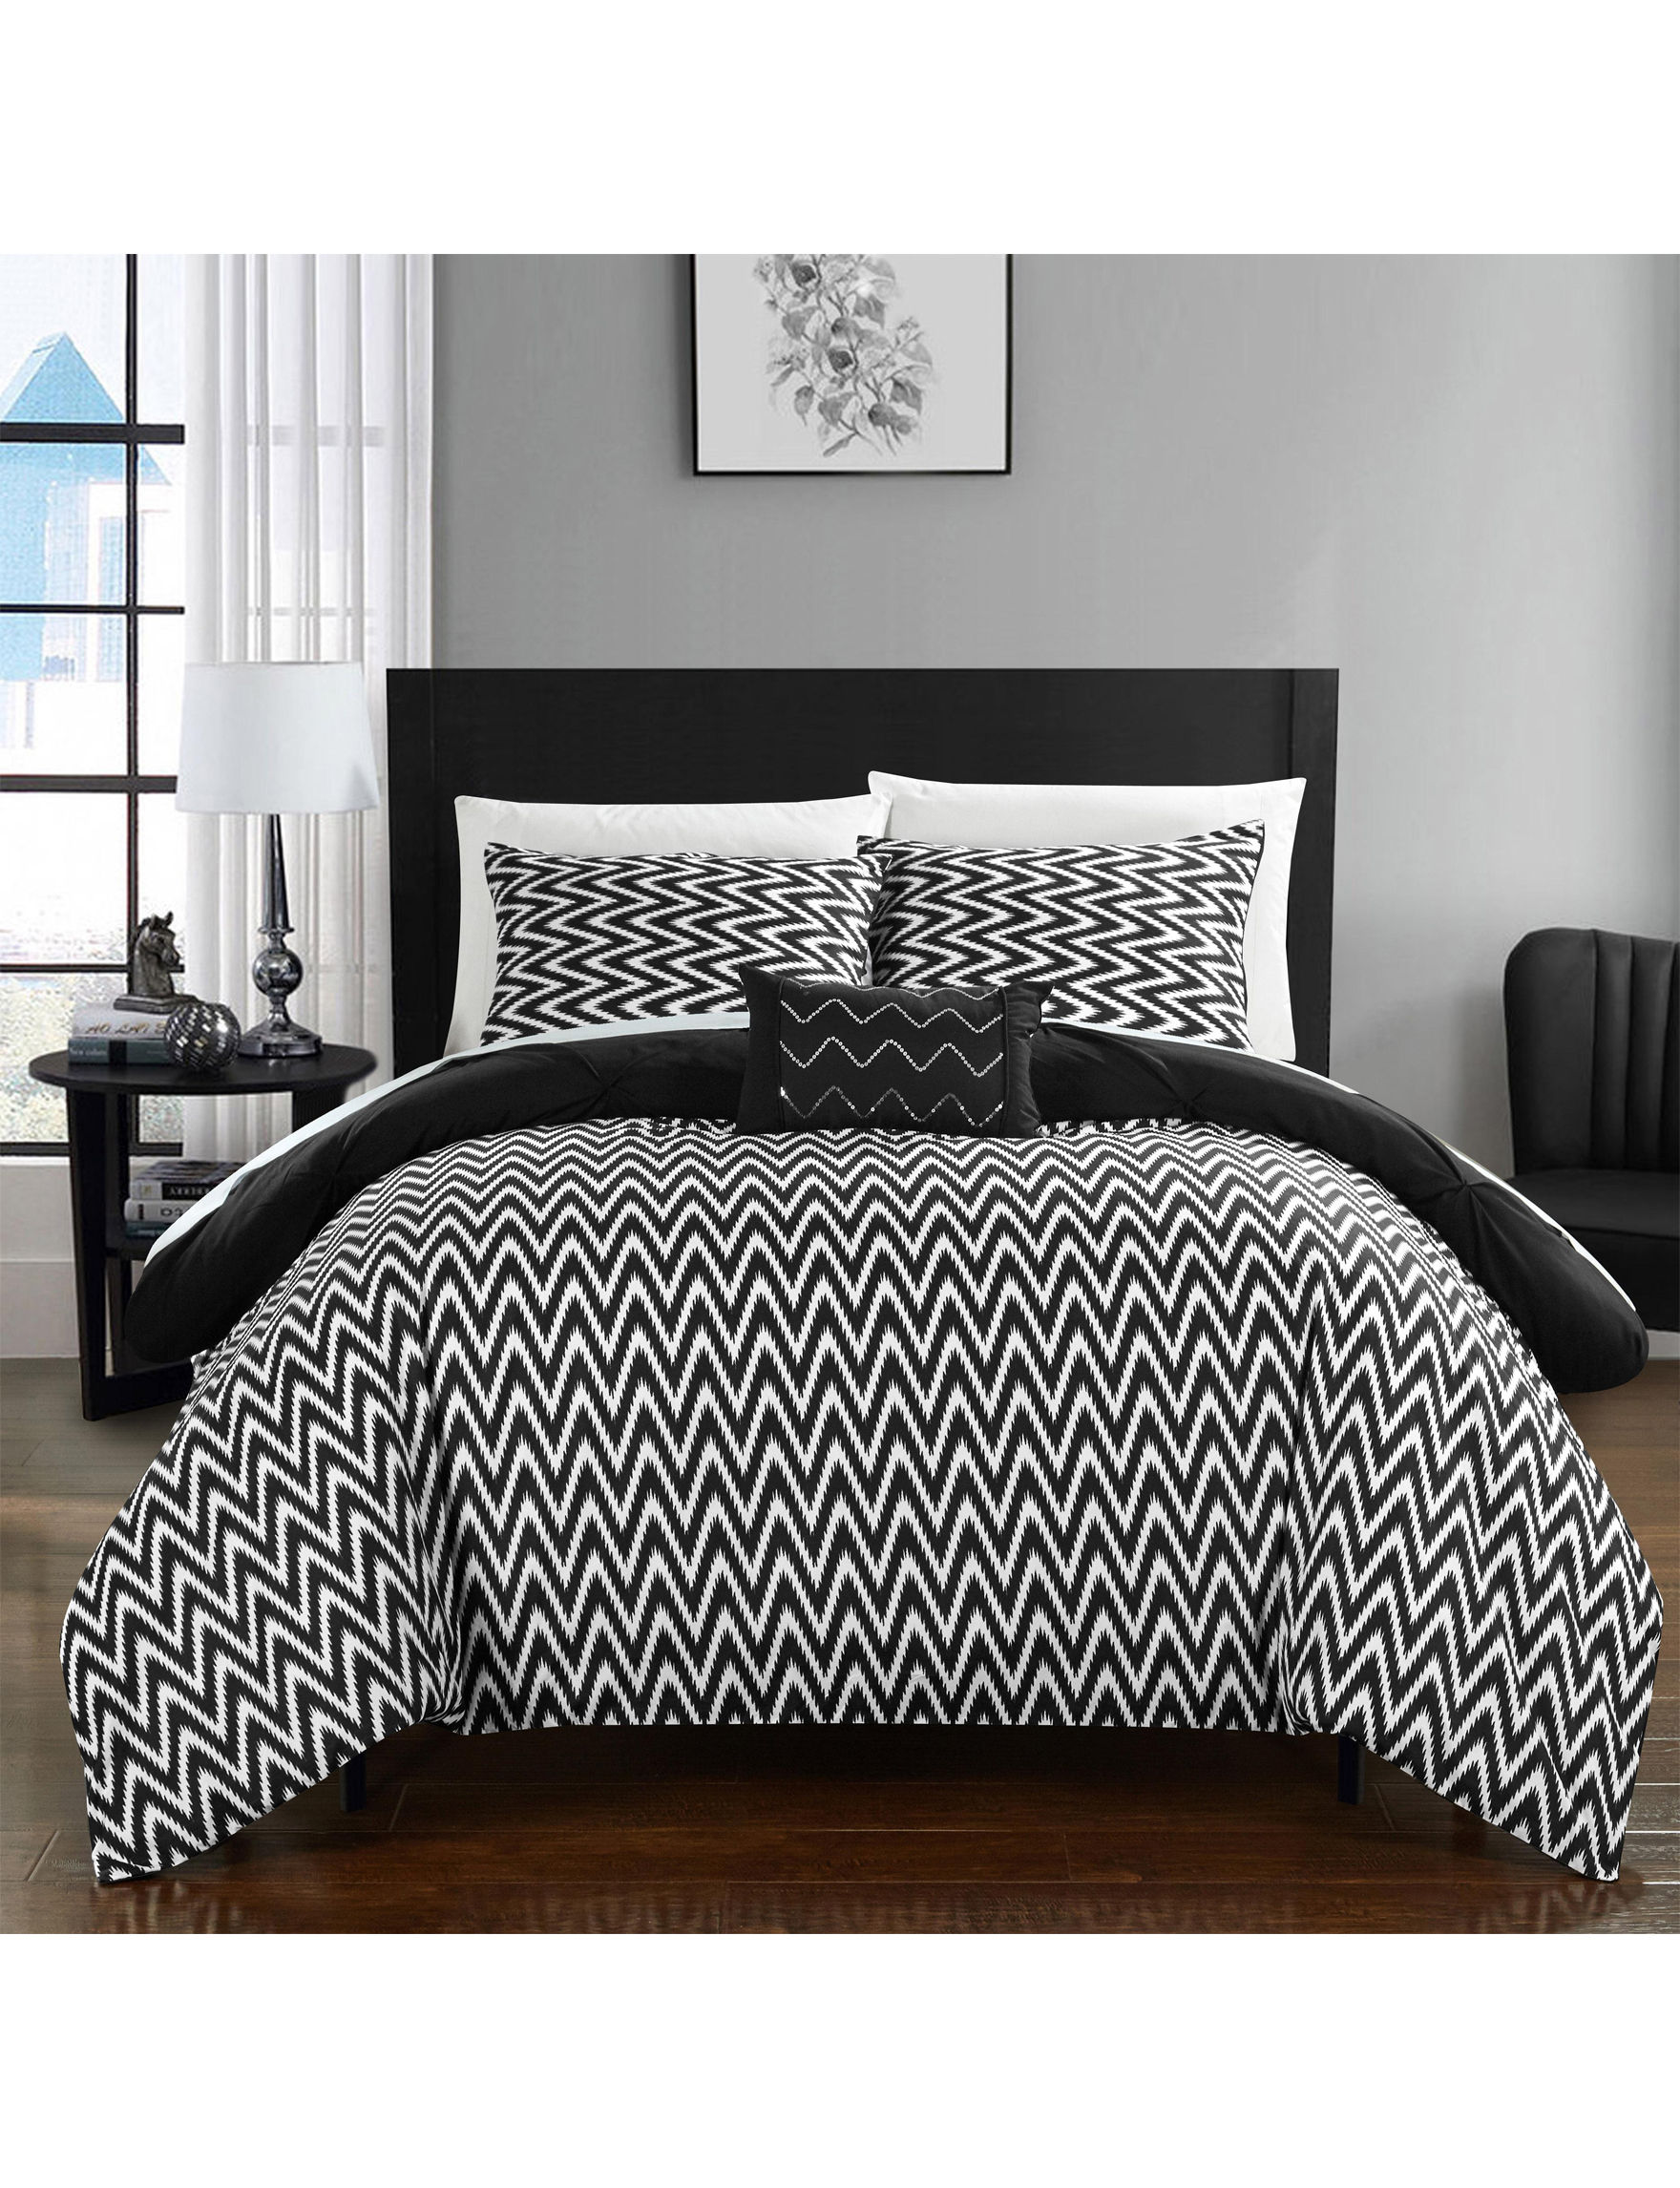 Chic Home Design Black Comforters & Comforter Sets